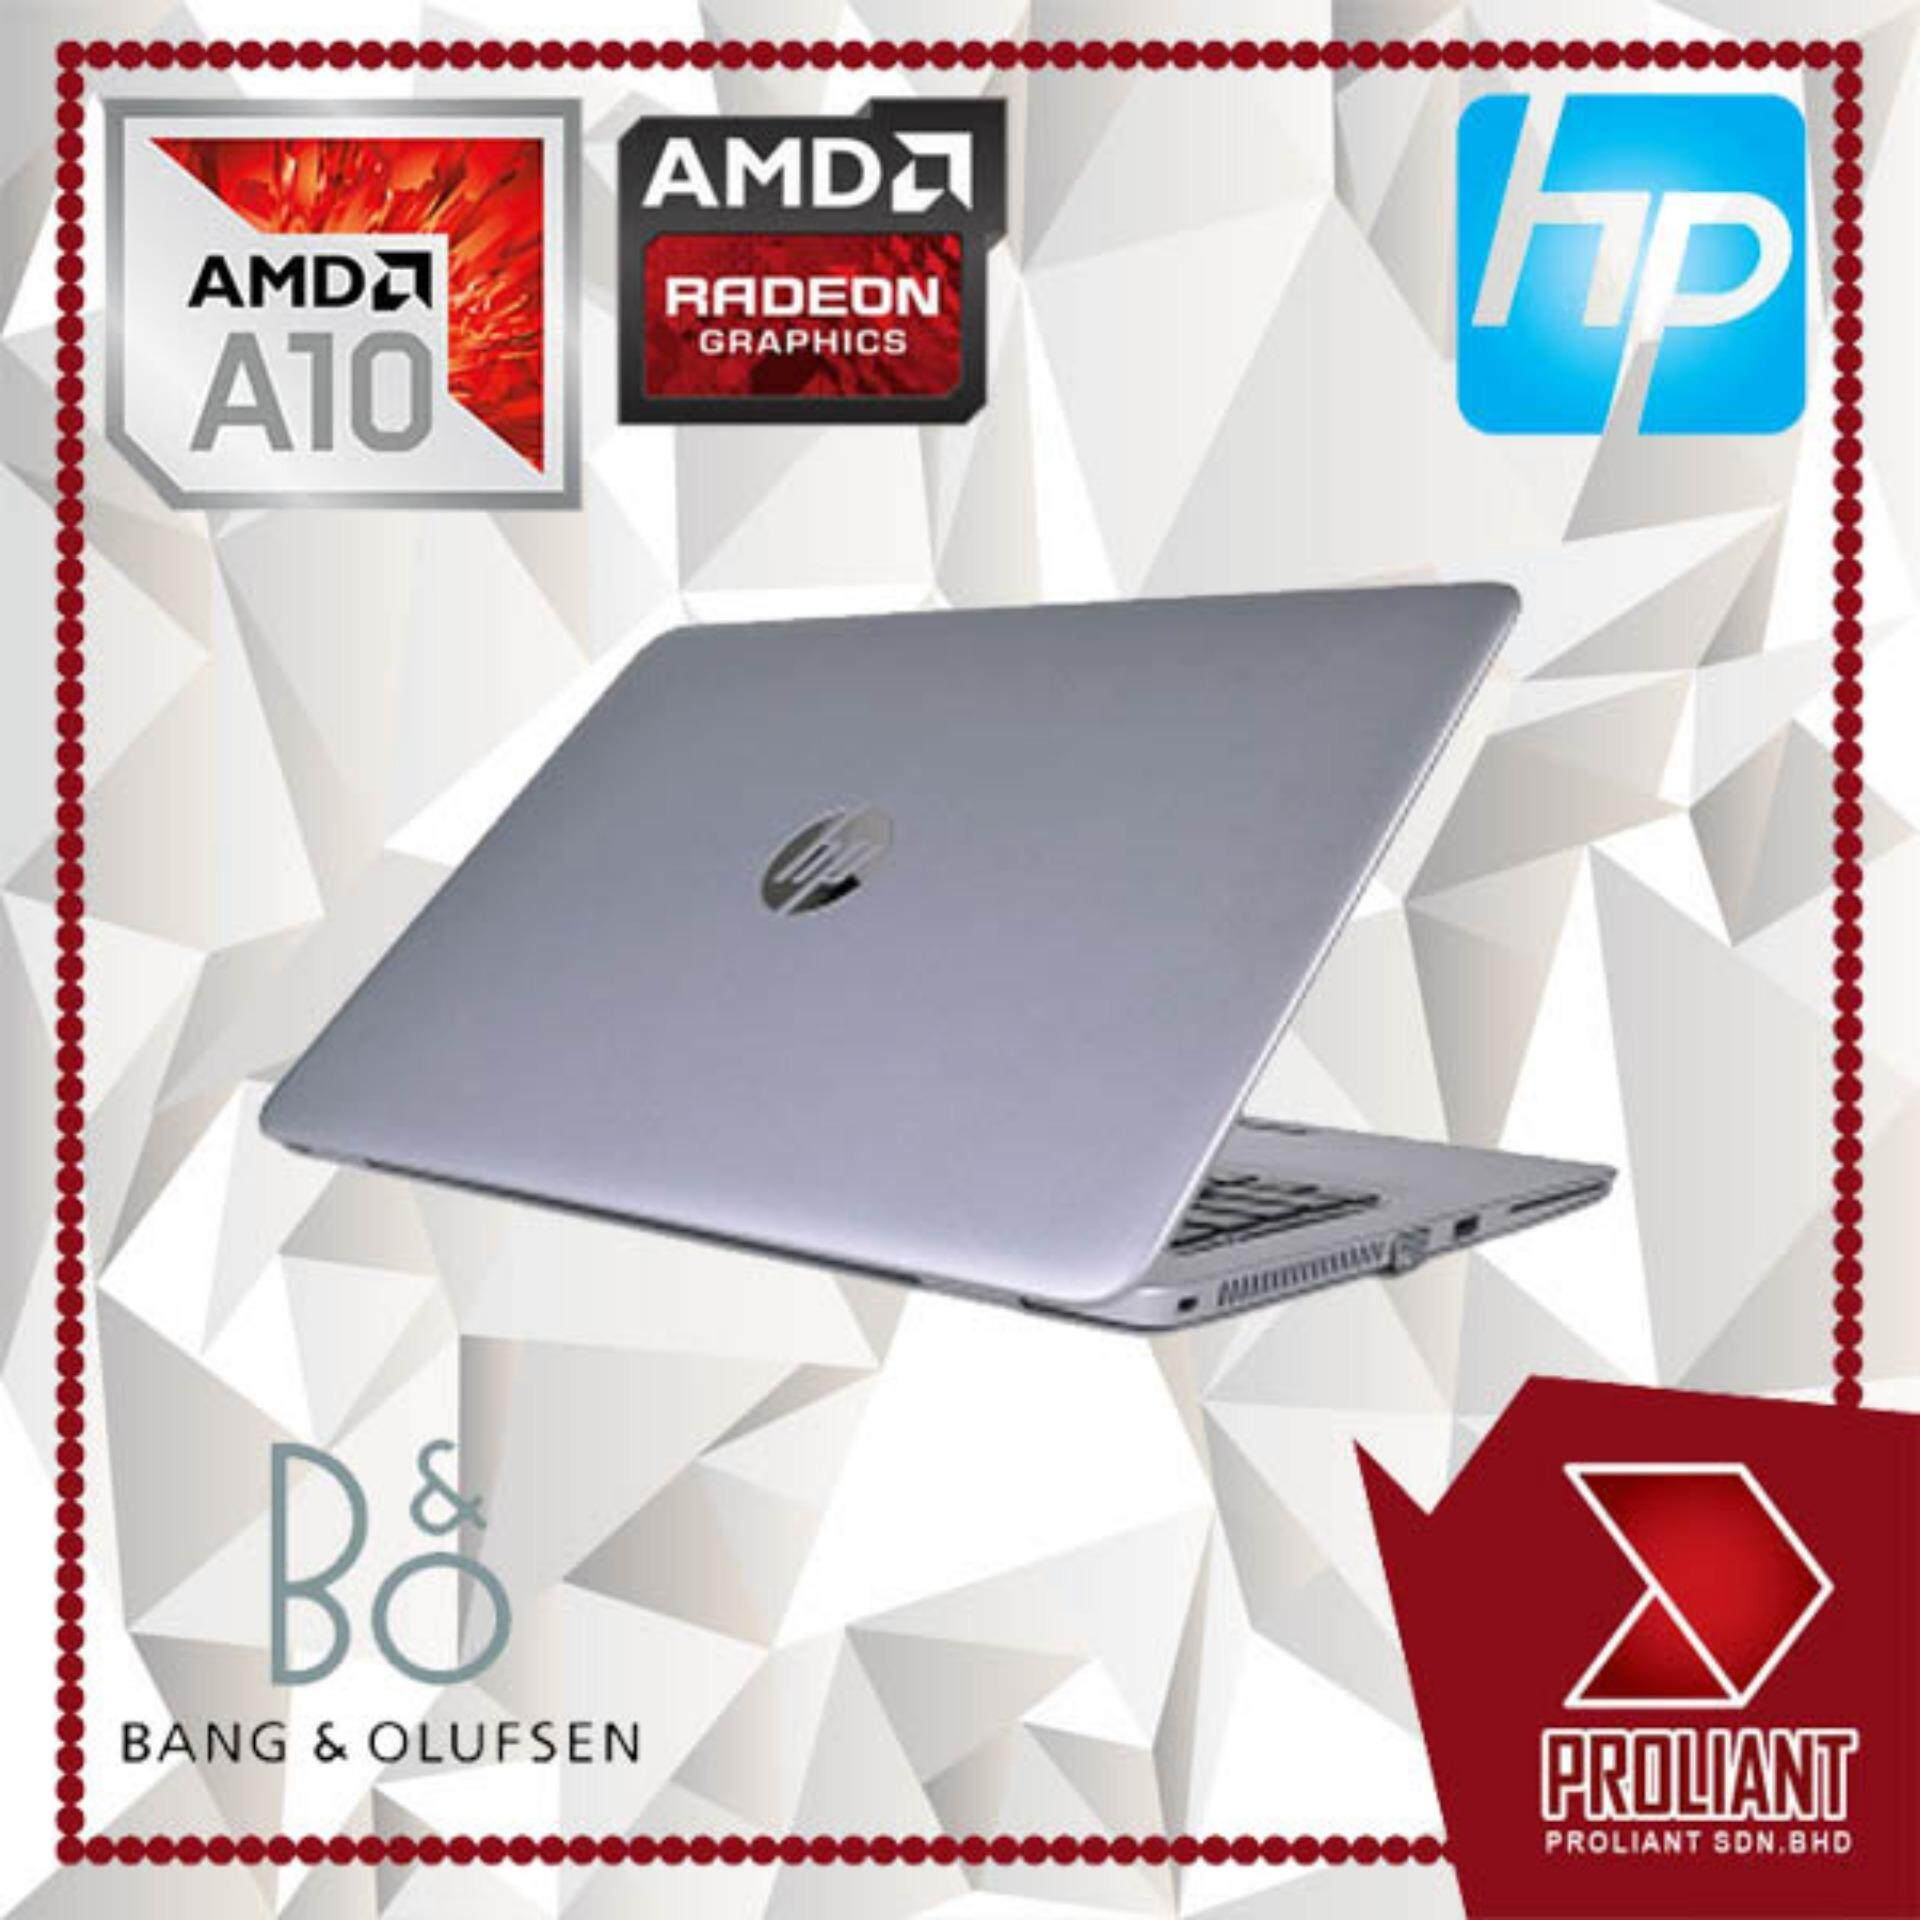 HP ELITEBOOK 745 G3 [ AMD A10 PRO-8700B QUAD CORE  8GB RAM  128GB SSD ] 2 YEAR WARRANTY Malaysia